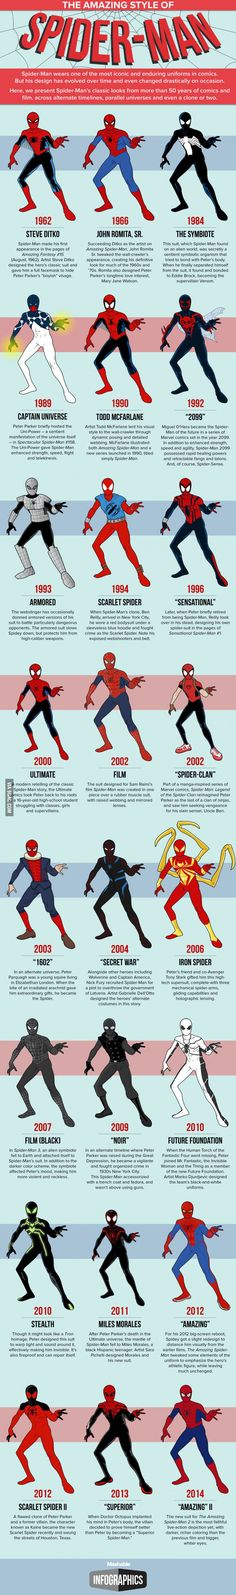 The Amazing Style of Spider-Man !